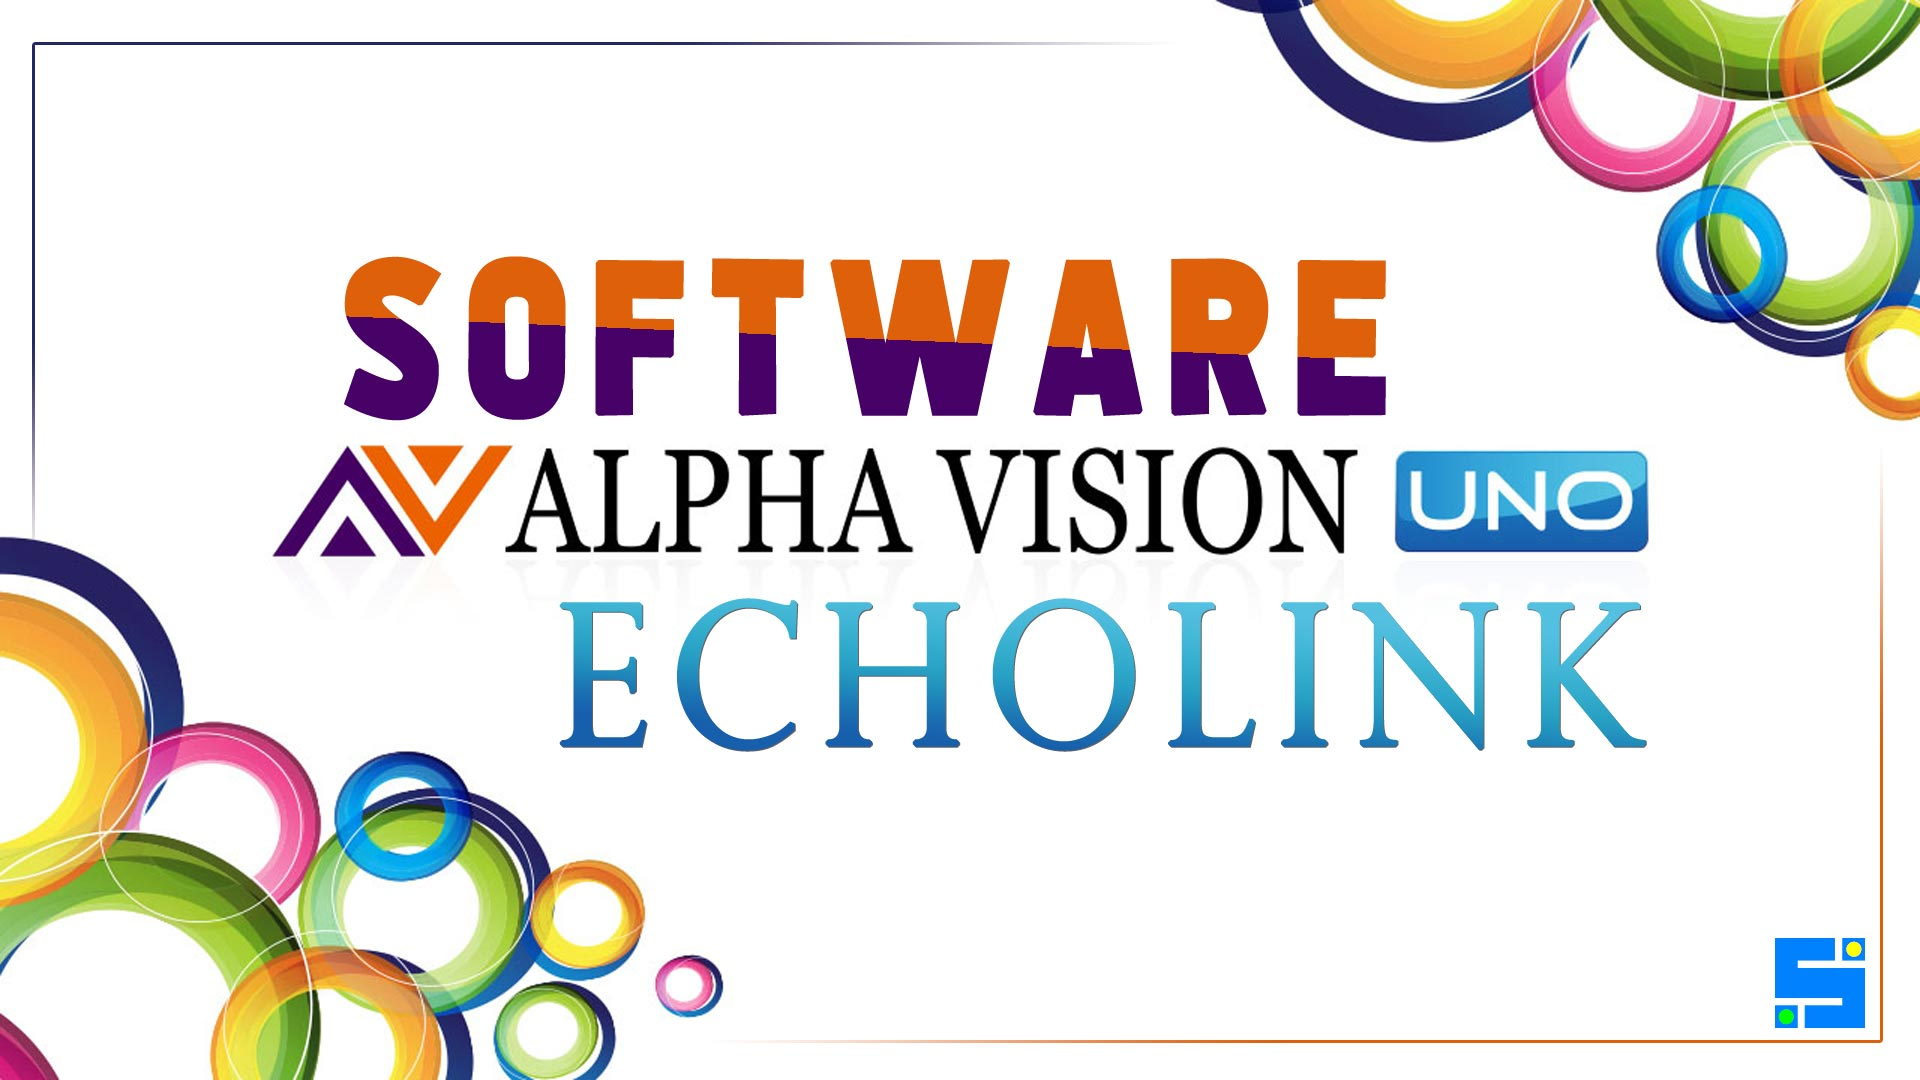 Download Software Echolink Alphavision Uno Firmware Receiver